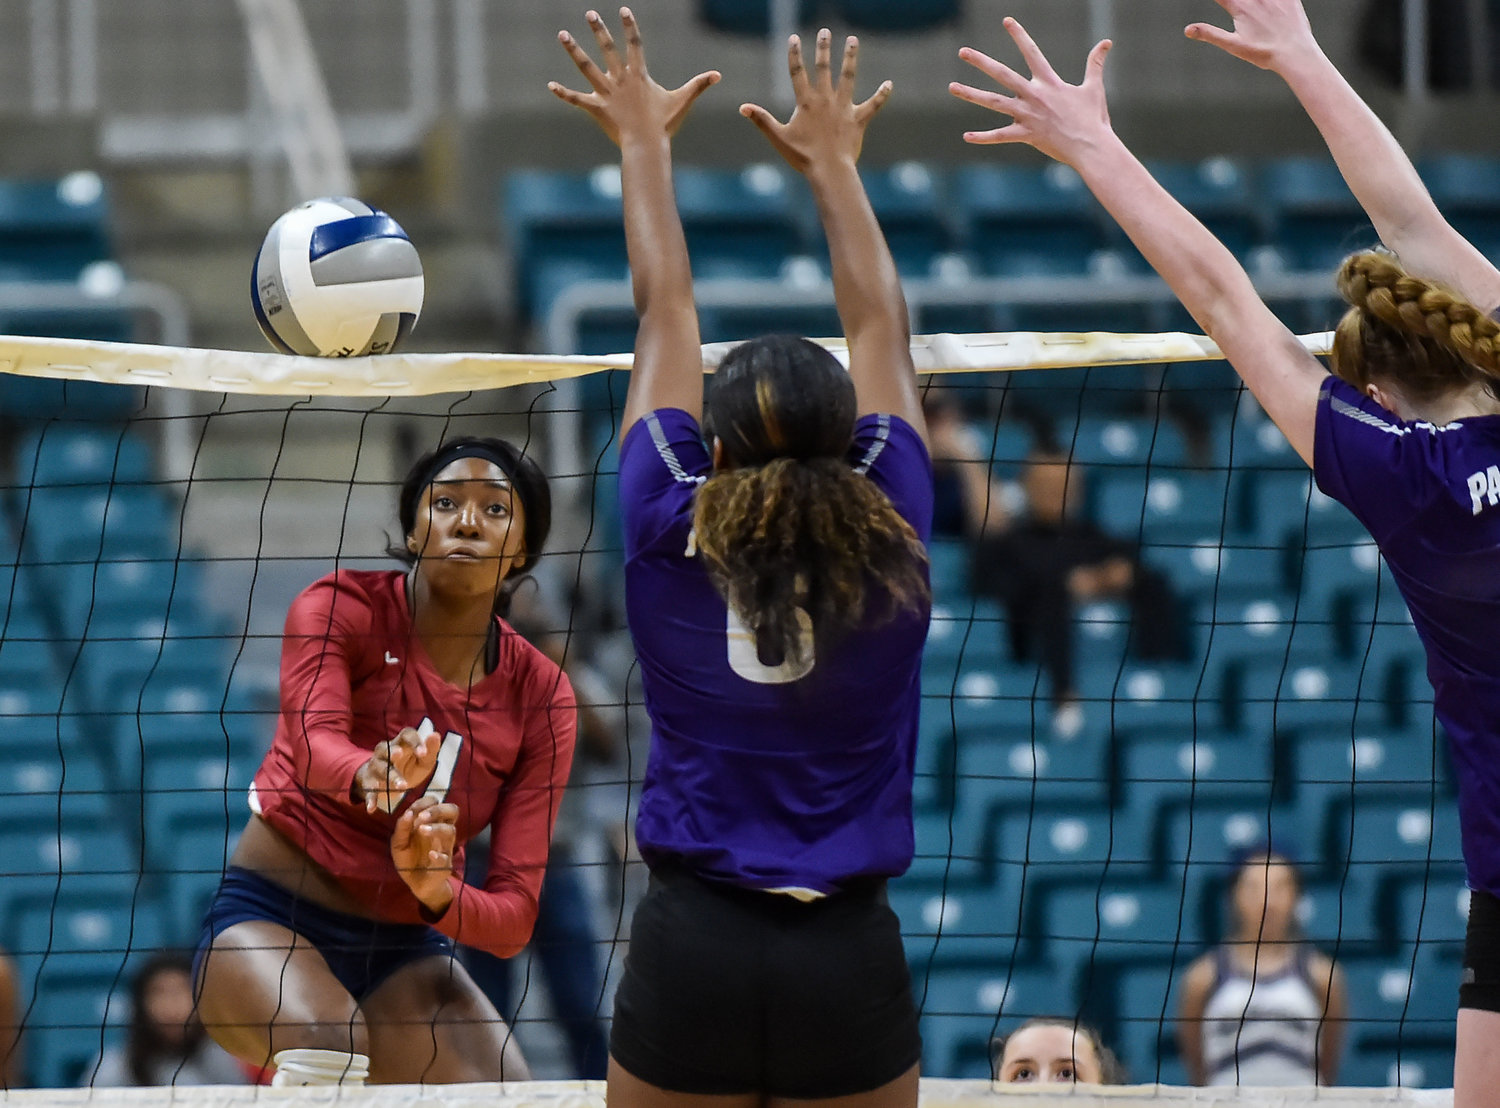 Katy Tx. Nov.5, 2019: Tompkins Cindy Tchouangwa (11) delivers a shot past Ridge Points Randee Hennings (6) during a high school volleyball playoff match between Tompkins and Ridge Point at the Merrell Center in Katy. (Photo by Mark Goodman / Katy Times)